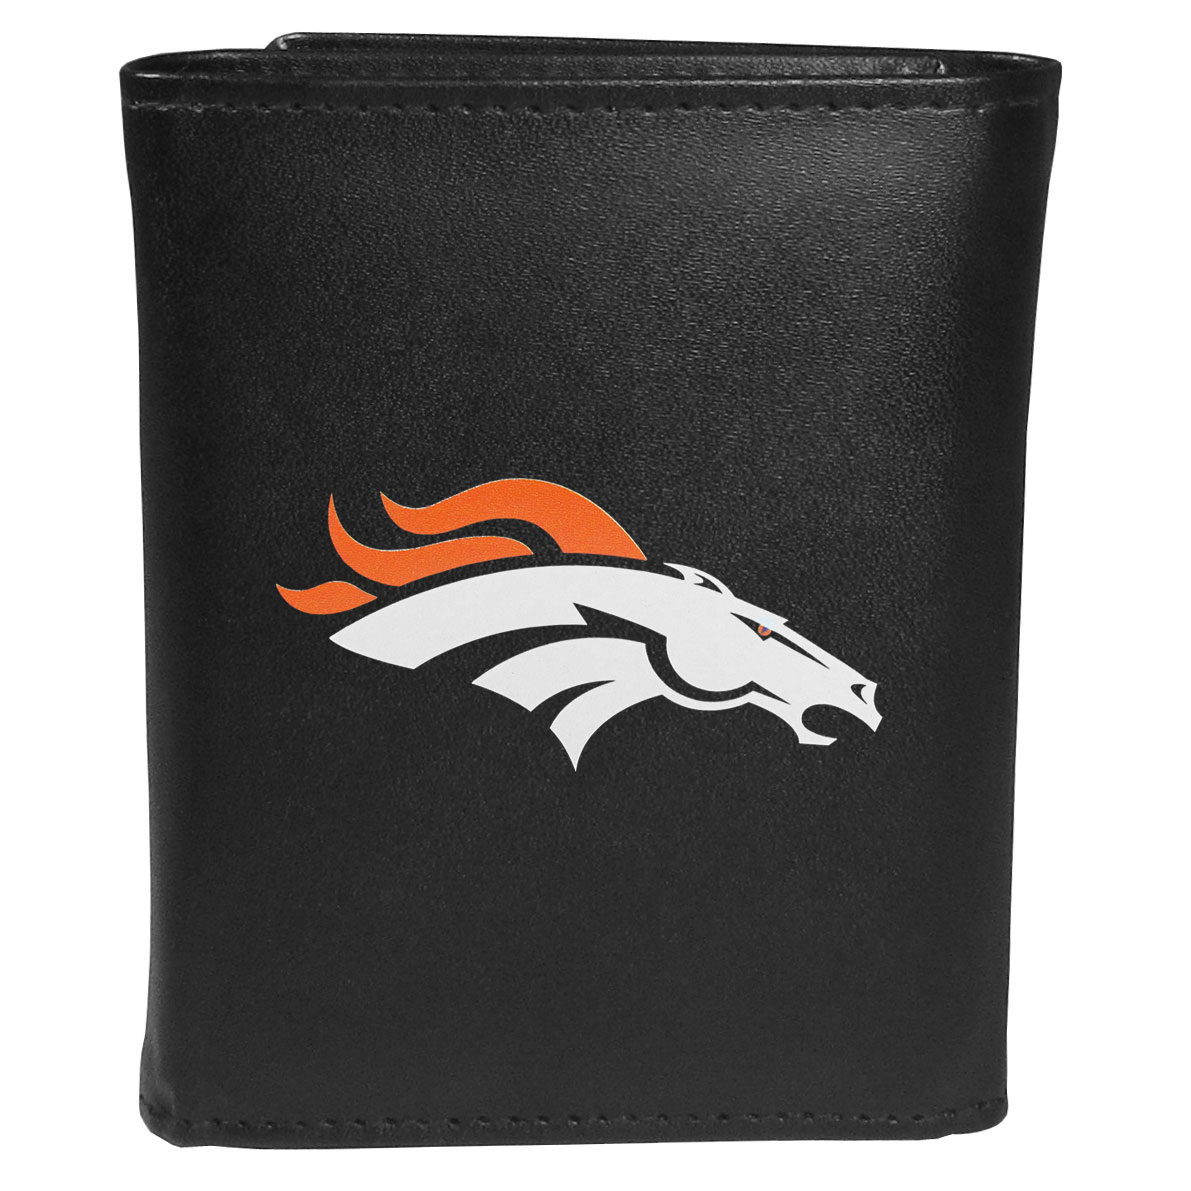 Denver Broncos Tri-fold Wallet Large Logo - Sports fans do not have to sacrifice style with this classic tri-fold wallet that sports theDenver Broncos?extra large logo. This men's fashion accessory has a leather grain look and expert craftmanship for a quality wallet at a great price. The wallet features inner credit card slots, windowed ID slot and a large billfold pocket. The front of the wallet features an extra large printed team logo.